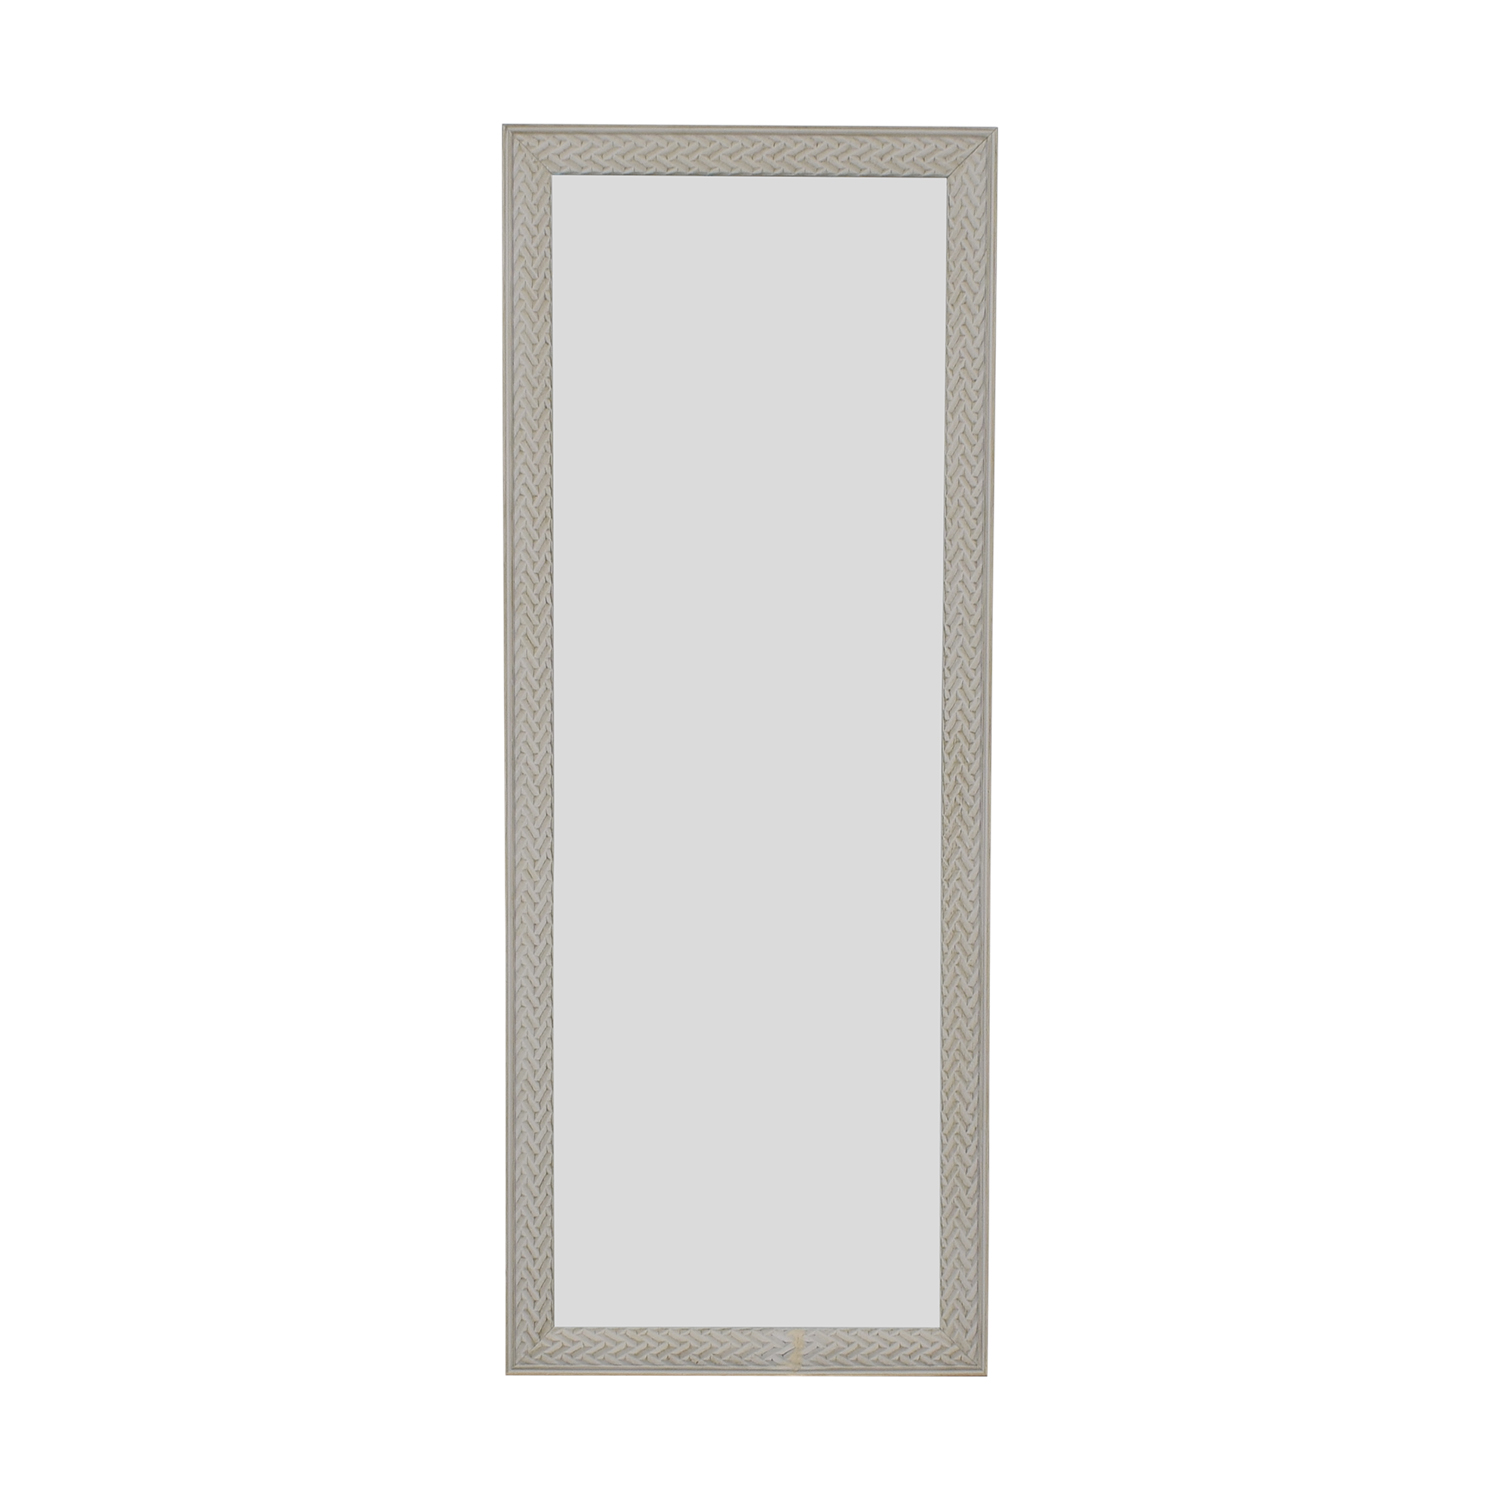 White Floor Mirror 44 Off Homegoods Homegoods White Framed Floor Mirror Decor